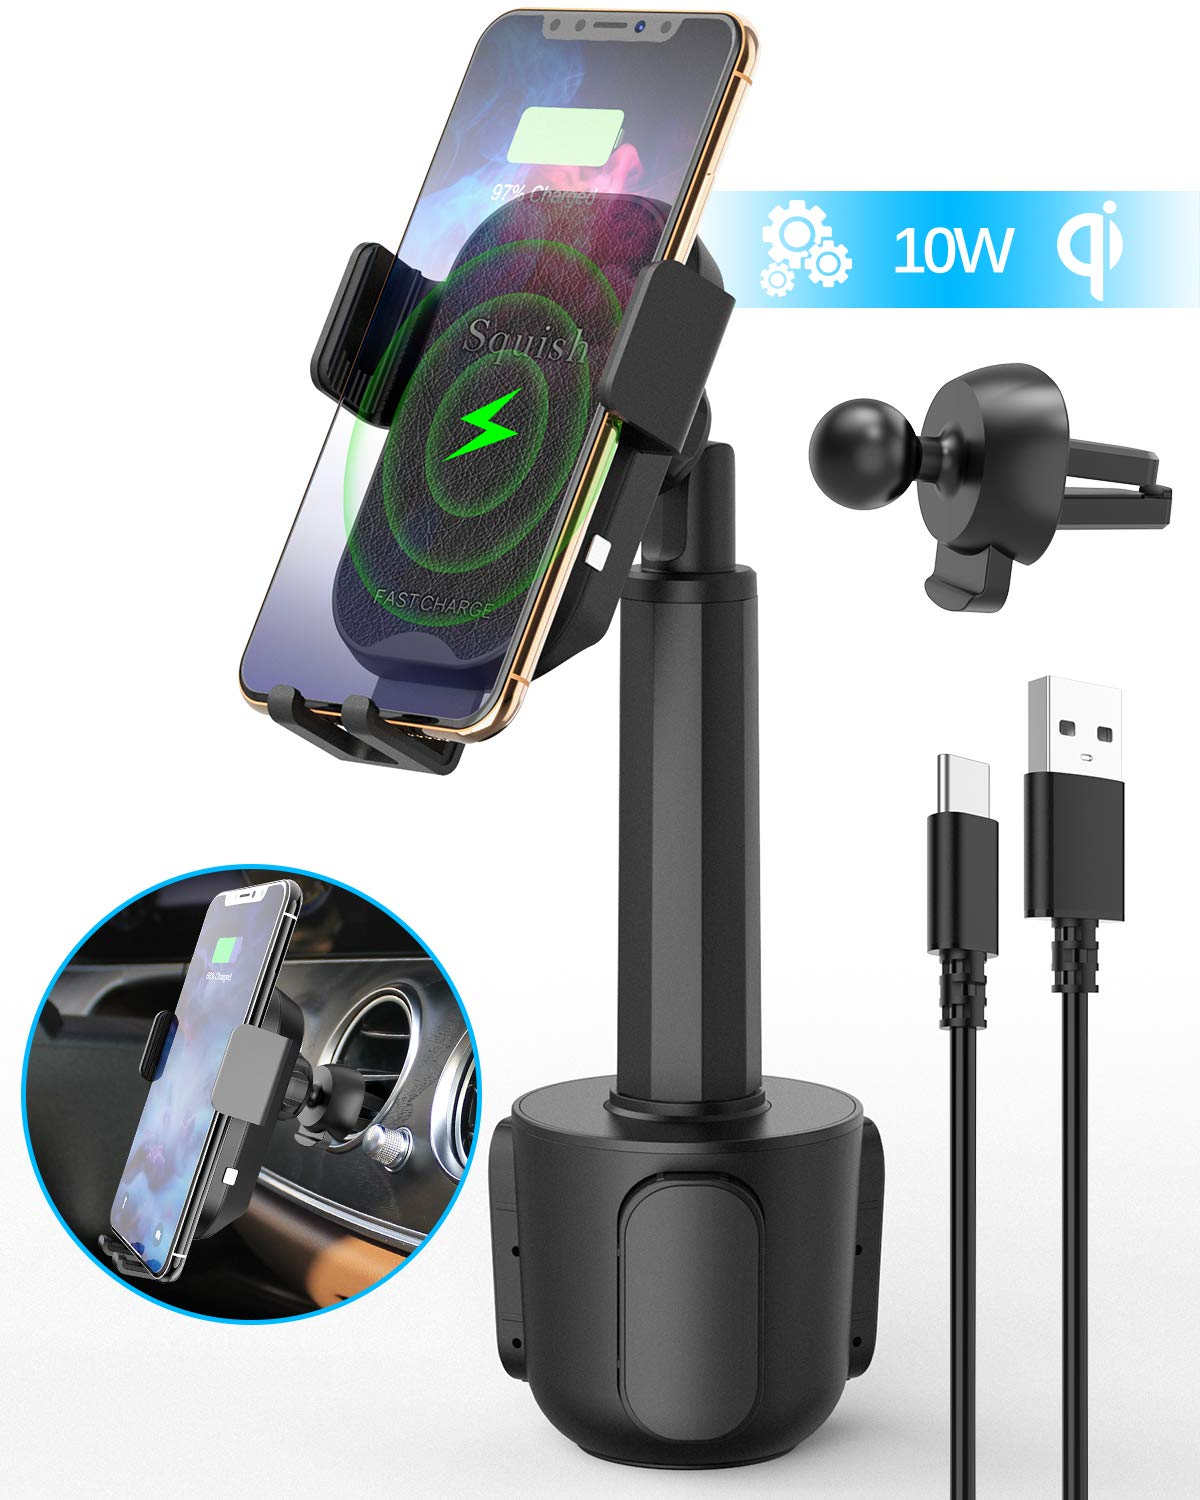 Wireless Car Charger, Squish 2-in-1 Universal Cell Phone Holder Cup Holder Phone Mount Car Air Vent Holder for iPhone, Samsung, Moto, Huawei, Nokia, ...